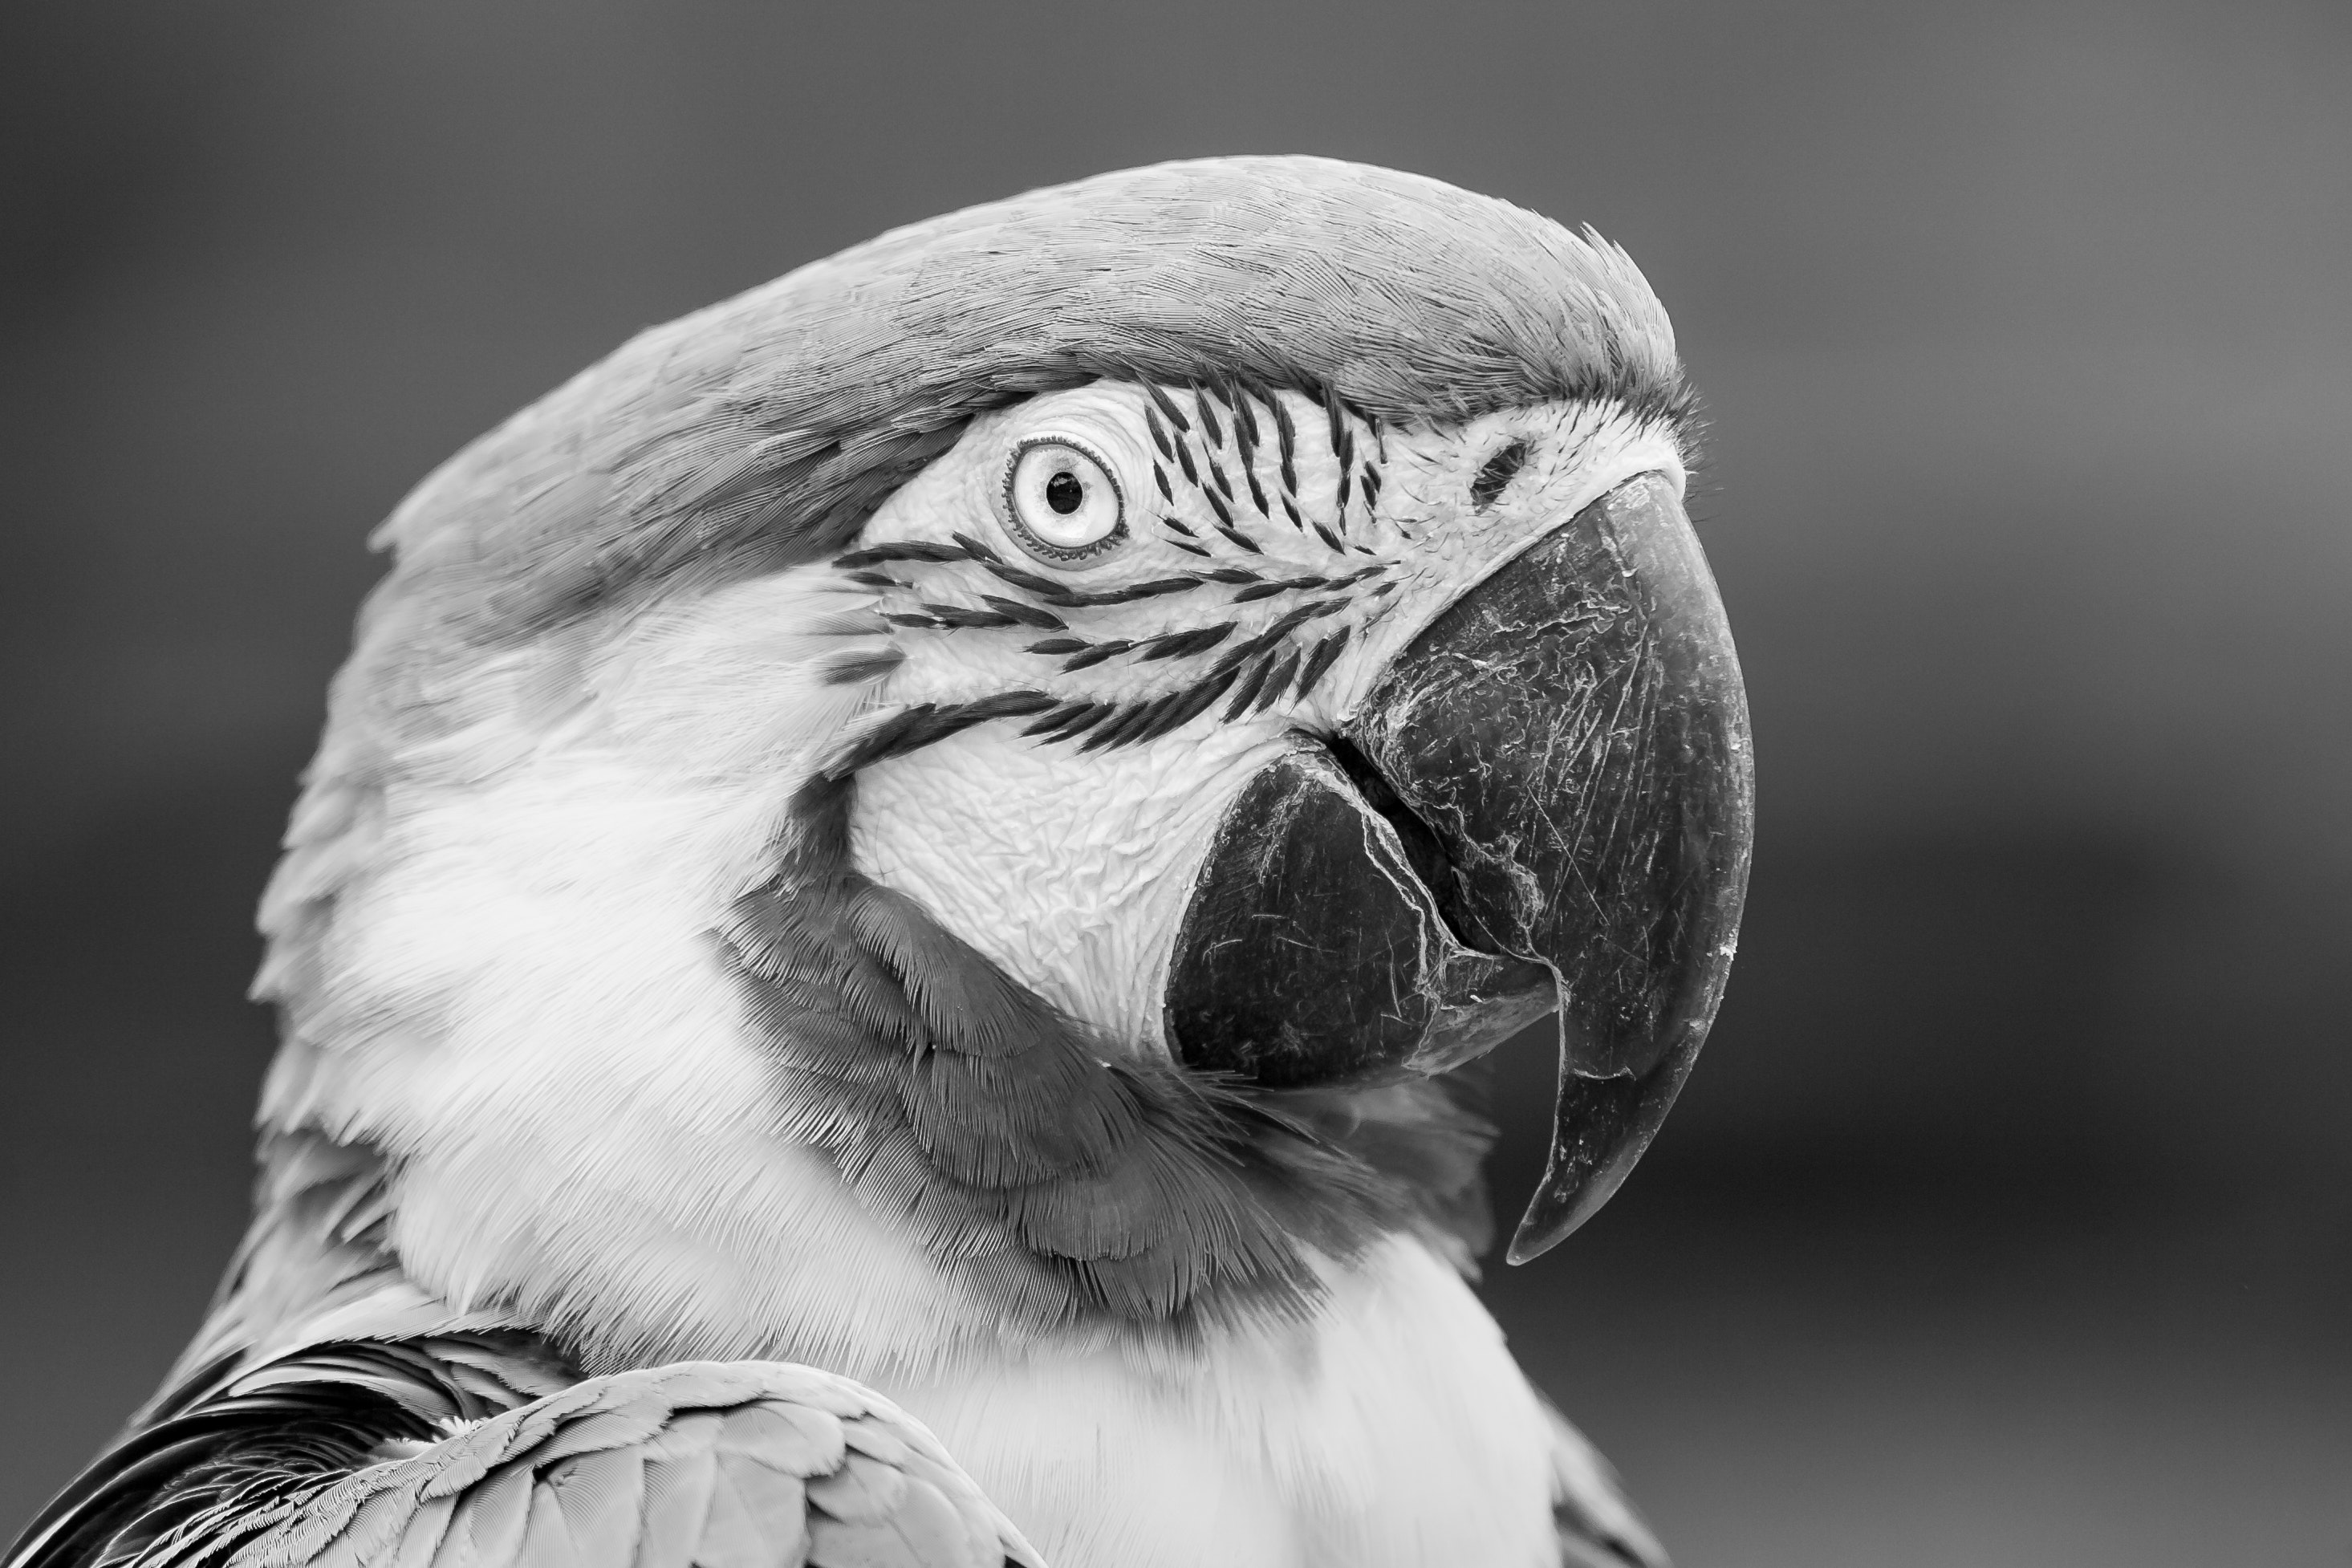 grayscale parrot bird animal eagle fotograf pexels adler auge federn south kostenloser photographer